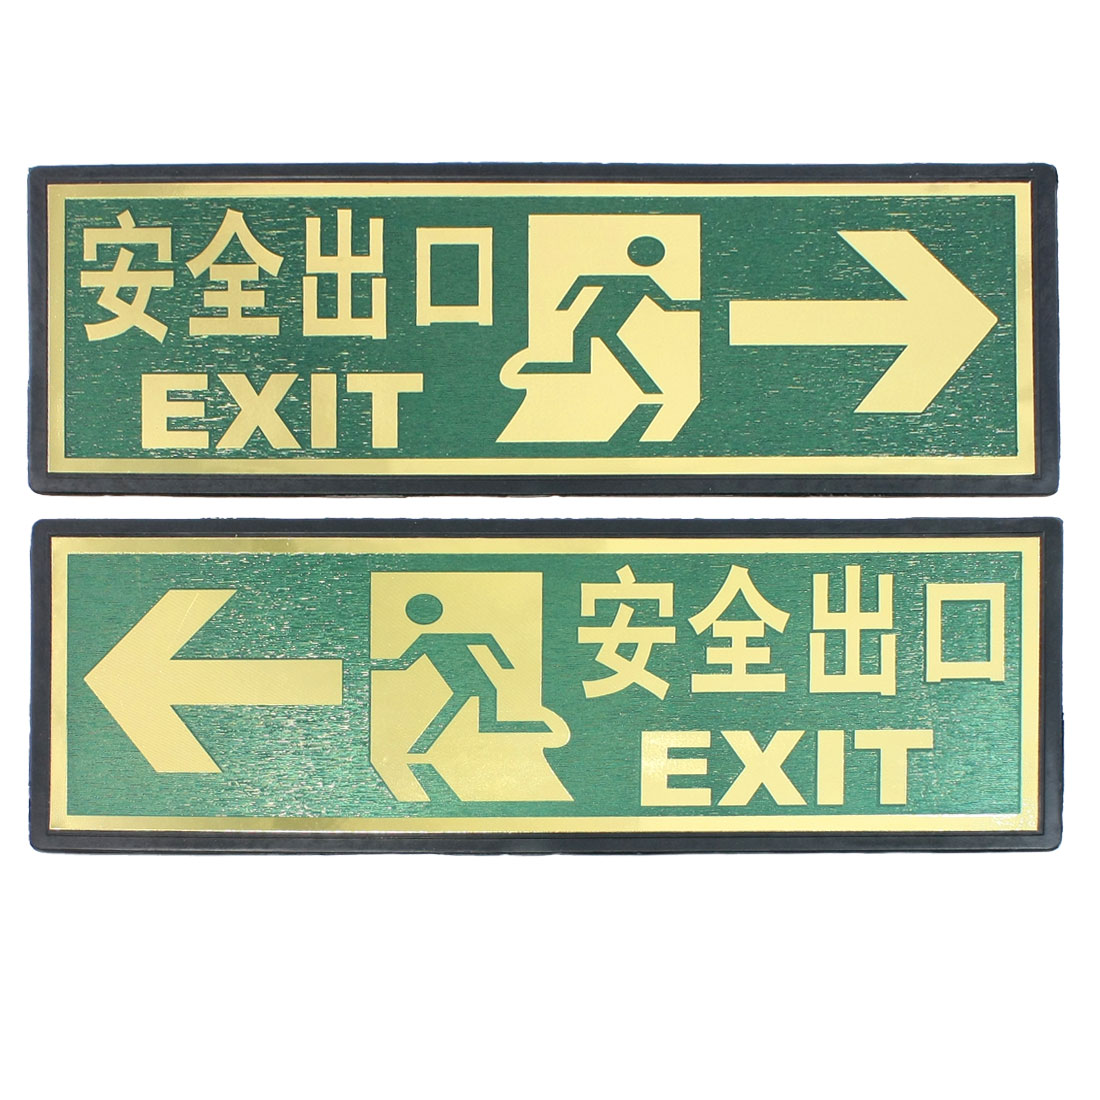 2 Pcs Green Gold Tone Arrow Left Exit Wall Sign Sticker